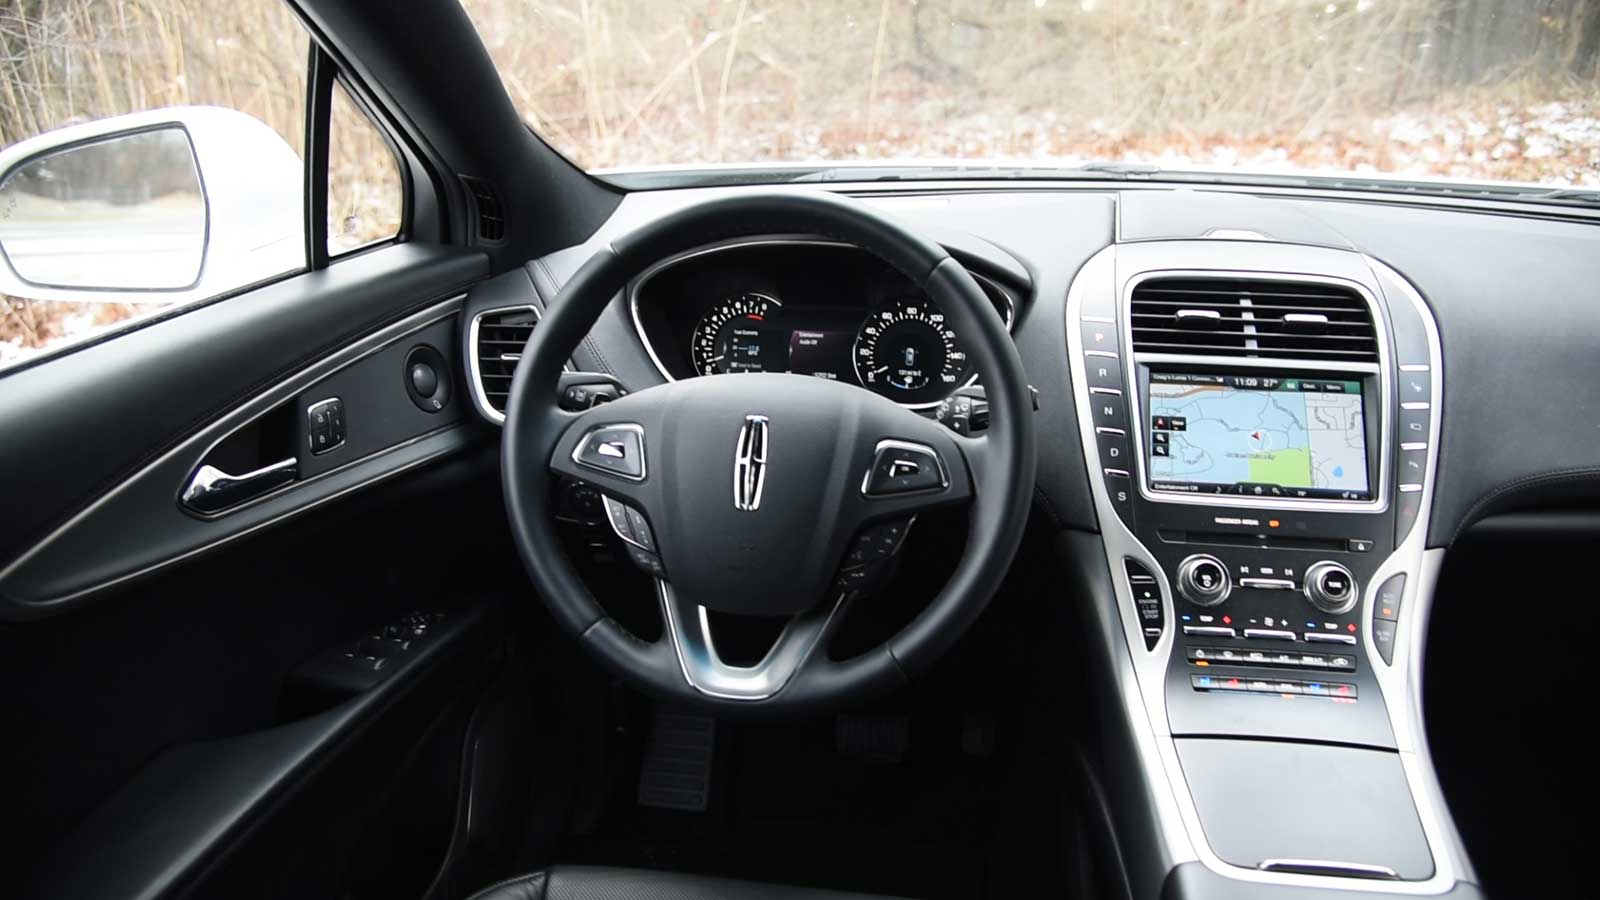 http://www.autoguide.com/blog/wp-content/gallery/2016-lincoln-mkx-review-2-2-2016/2016-Lincoln-MKX-Interior-01.jpg